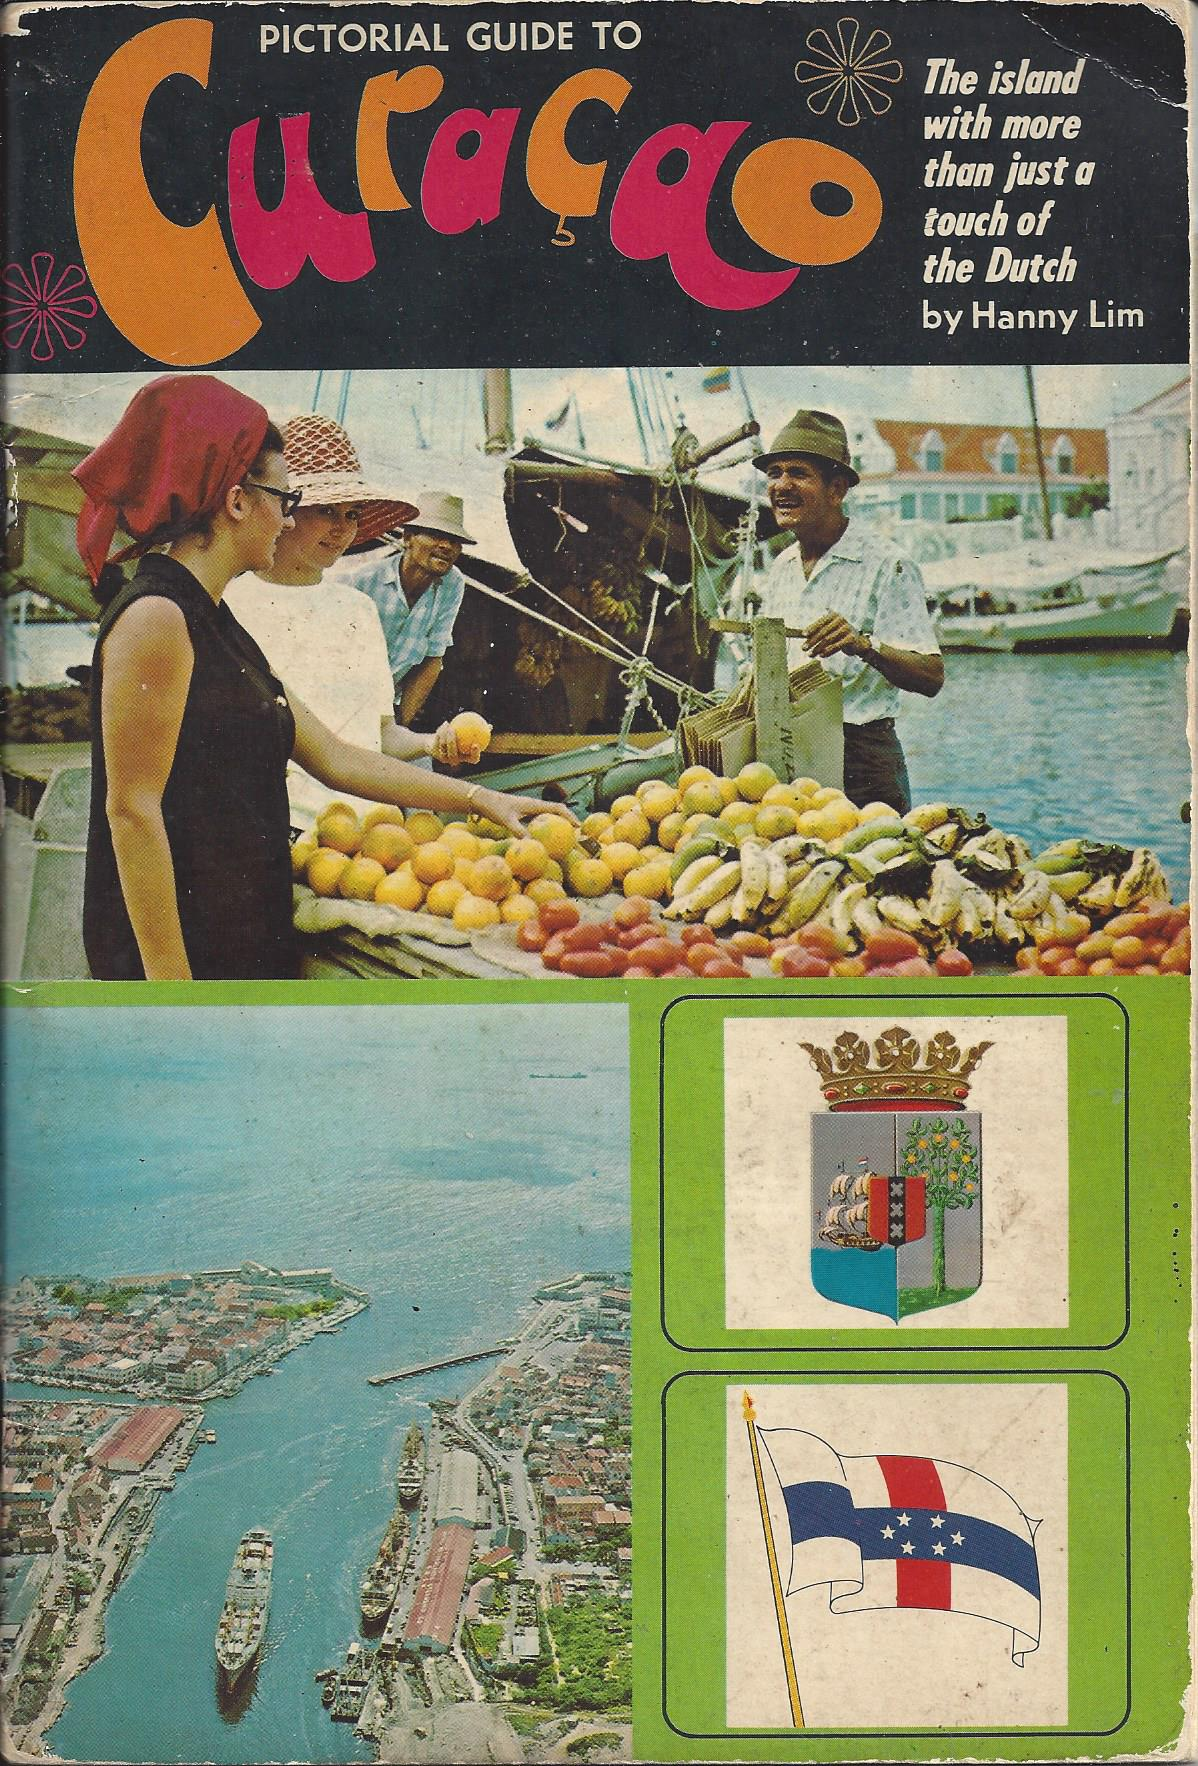 Pictorial-guide-to-Curacao.jpg